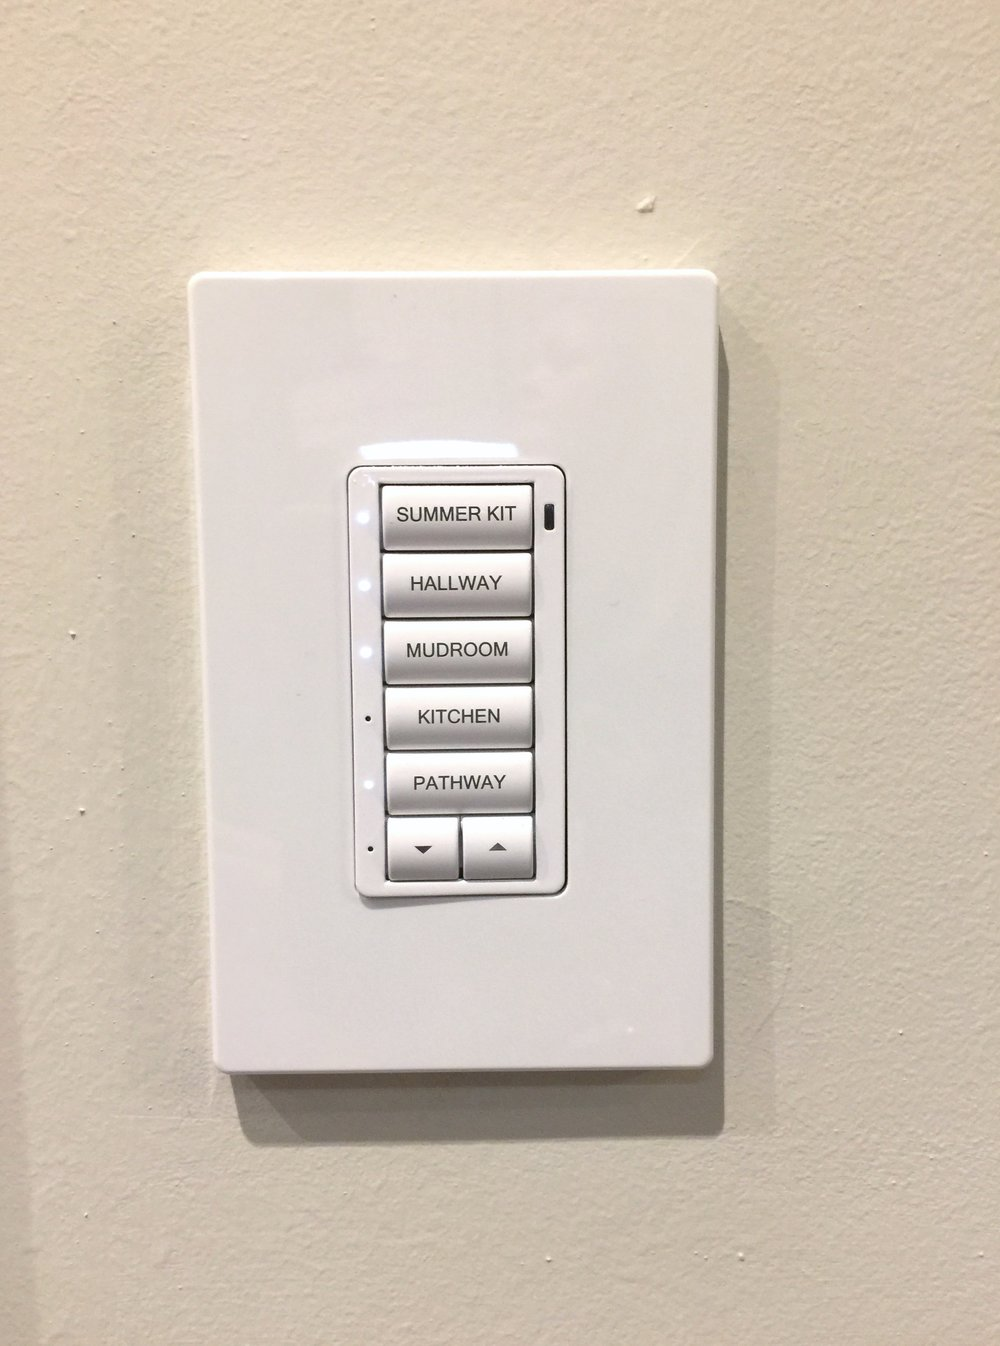 Legrand switches were labeled and all stacked into one single switch plate. :-) Kitchen in The New American Remodel - Orlando, KBIS #lightswitch